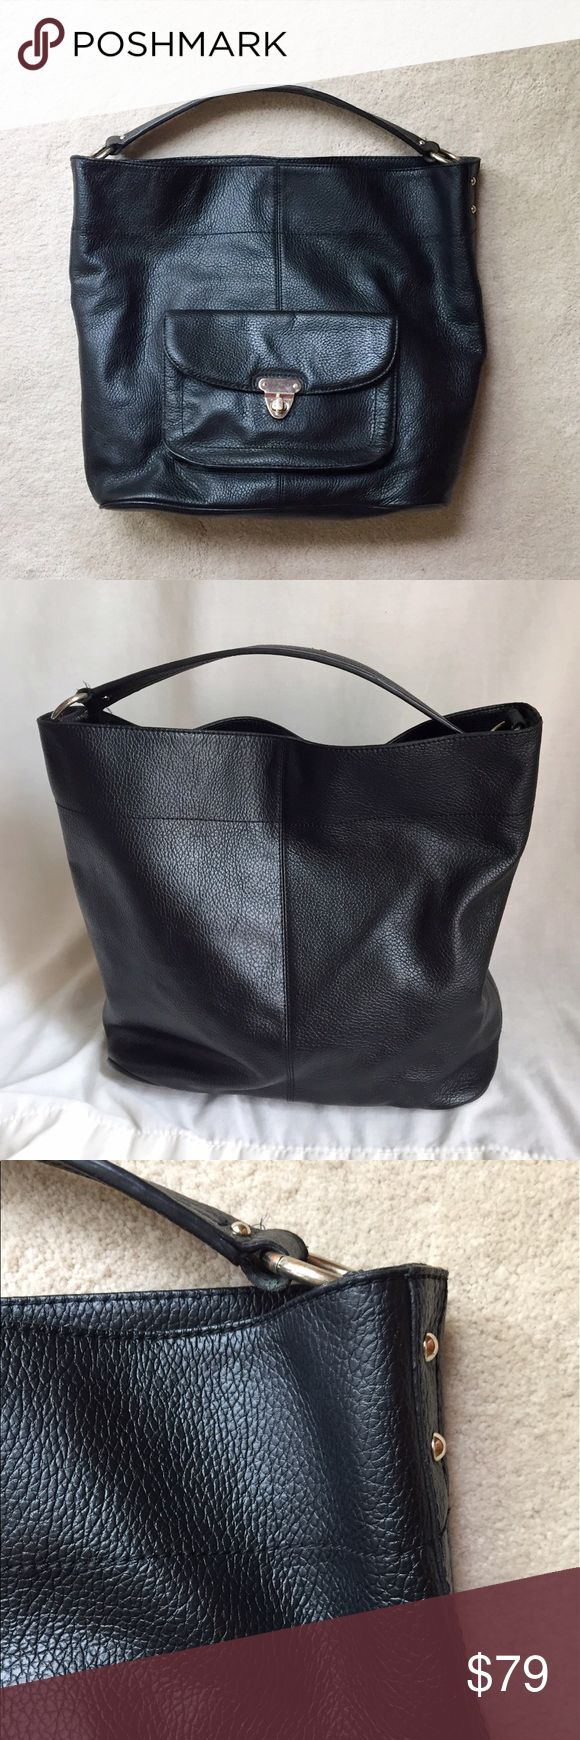 """Banana Republic Black Pebbled Leather Tote The perfect combination of style and function! This large tote bag by Banana Republic looks great and is big enough to carry everything you need. The bag has a front pocket with a gold buckle closure. There is an interior zip pocket and 2 slide pockets. It is made of 100% leather and is fully lined. It is 13"""" high, 15"""" wide, and 6"""" deep. The handle has a 7"""" drop. Banana Republic Bags Totes"""